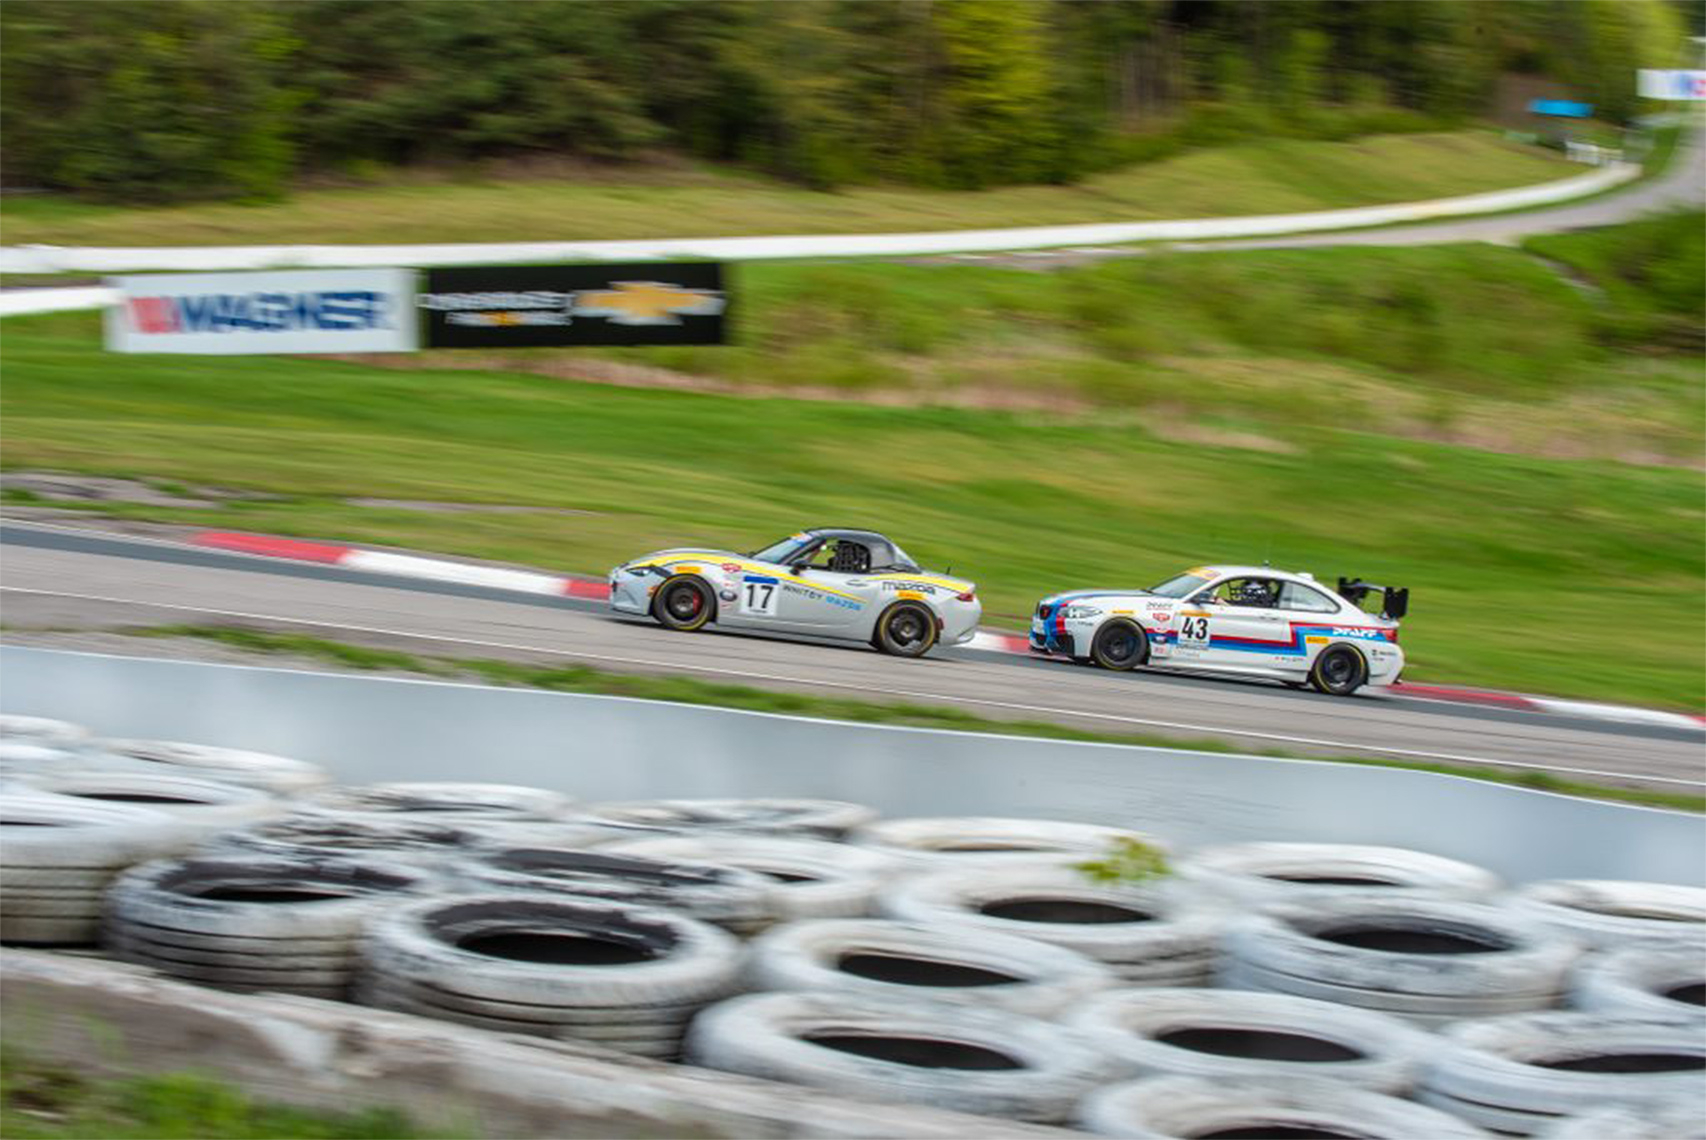 TrackWorthy - Canadian Touring Car Championship at Canadian Tire Motorsport Park (4)